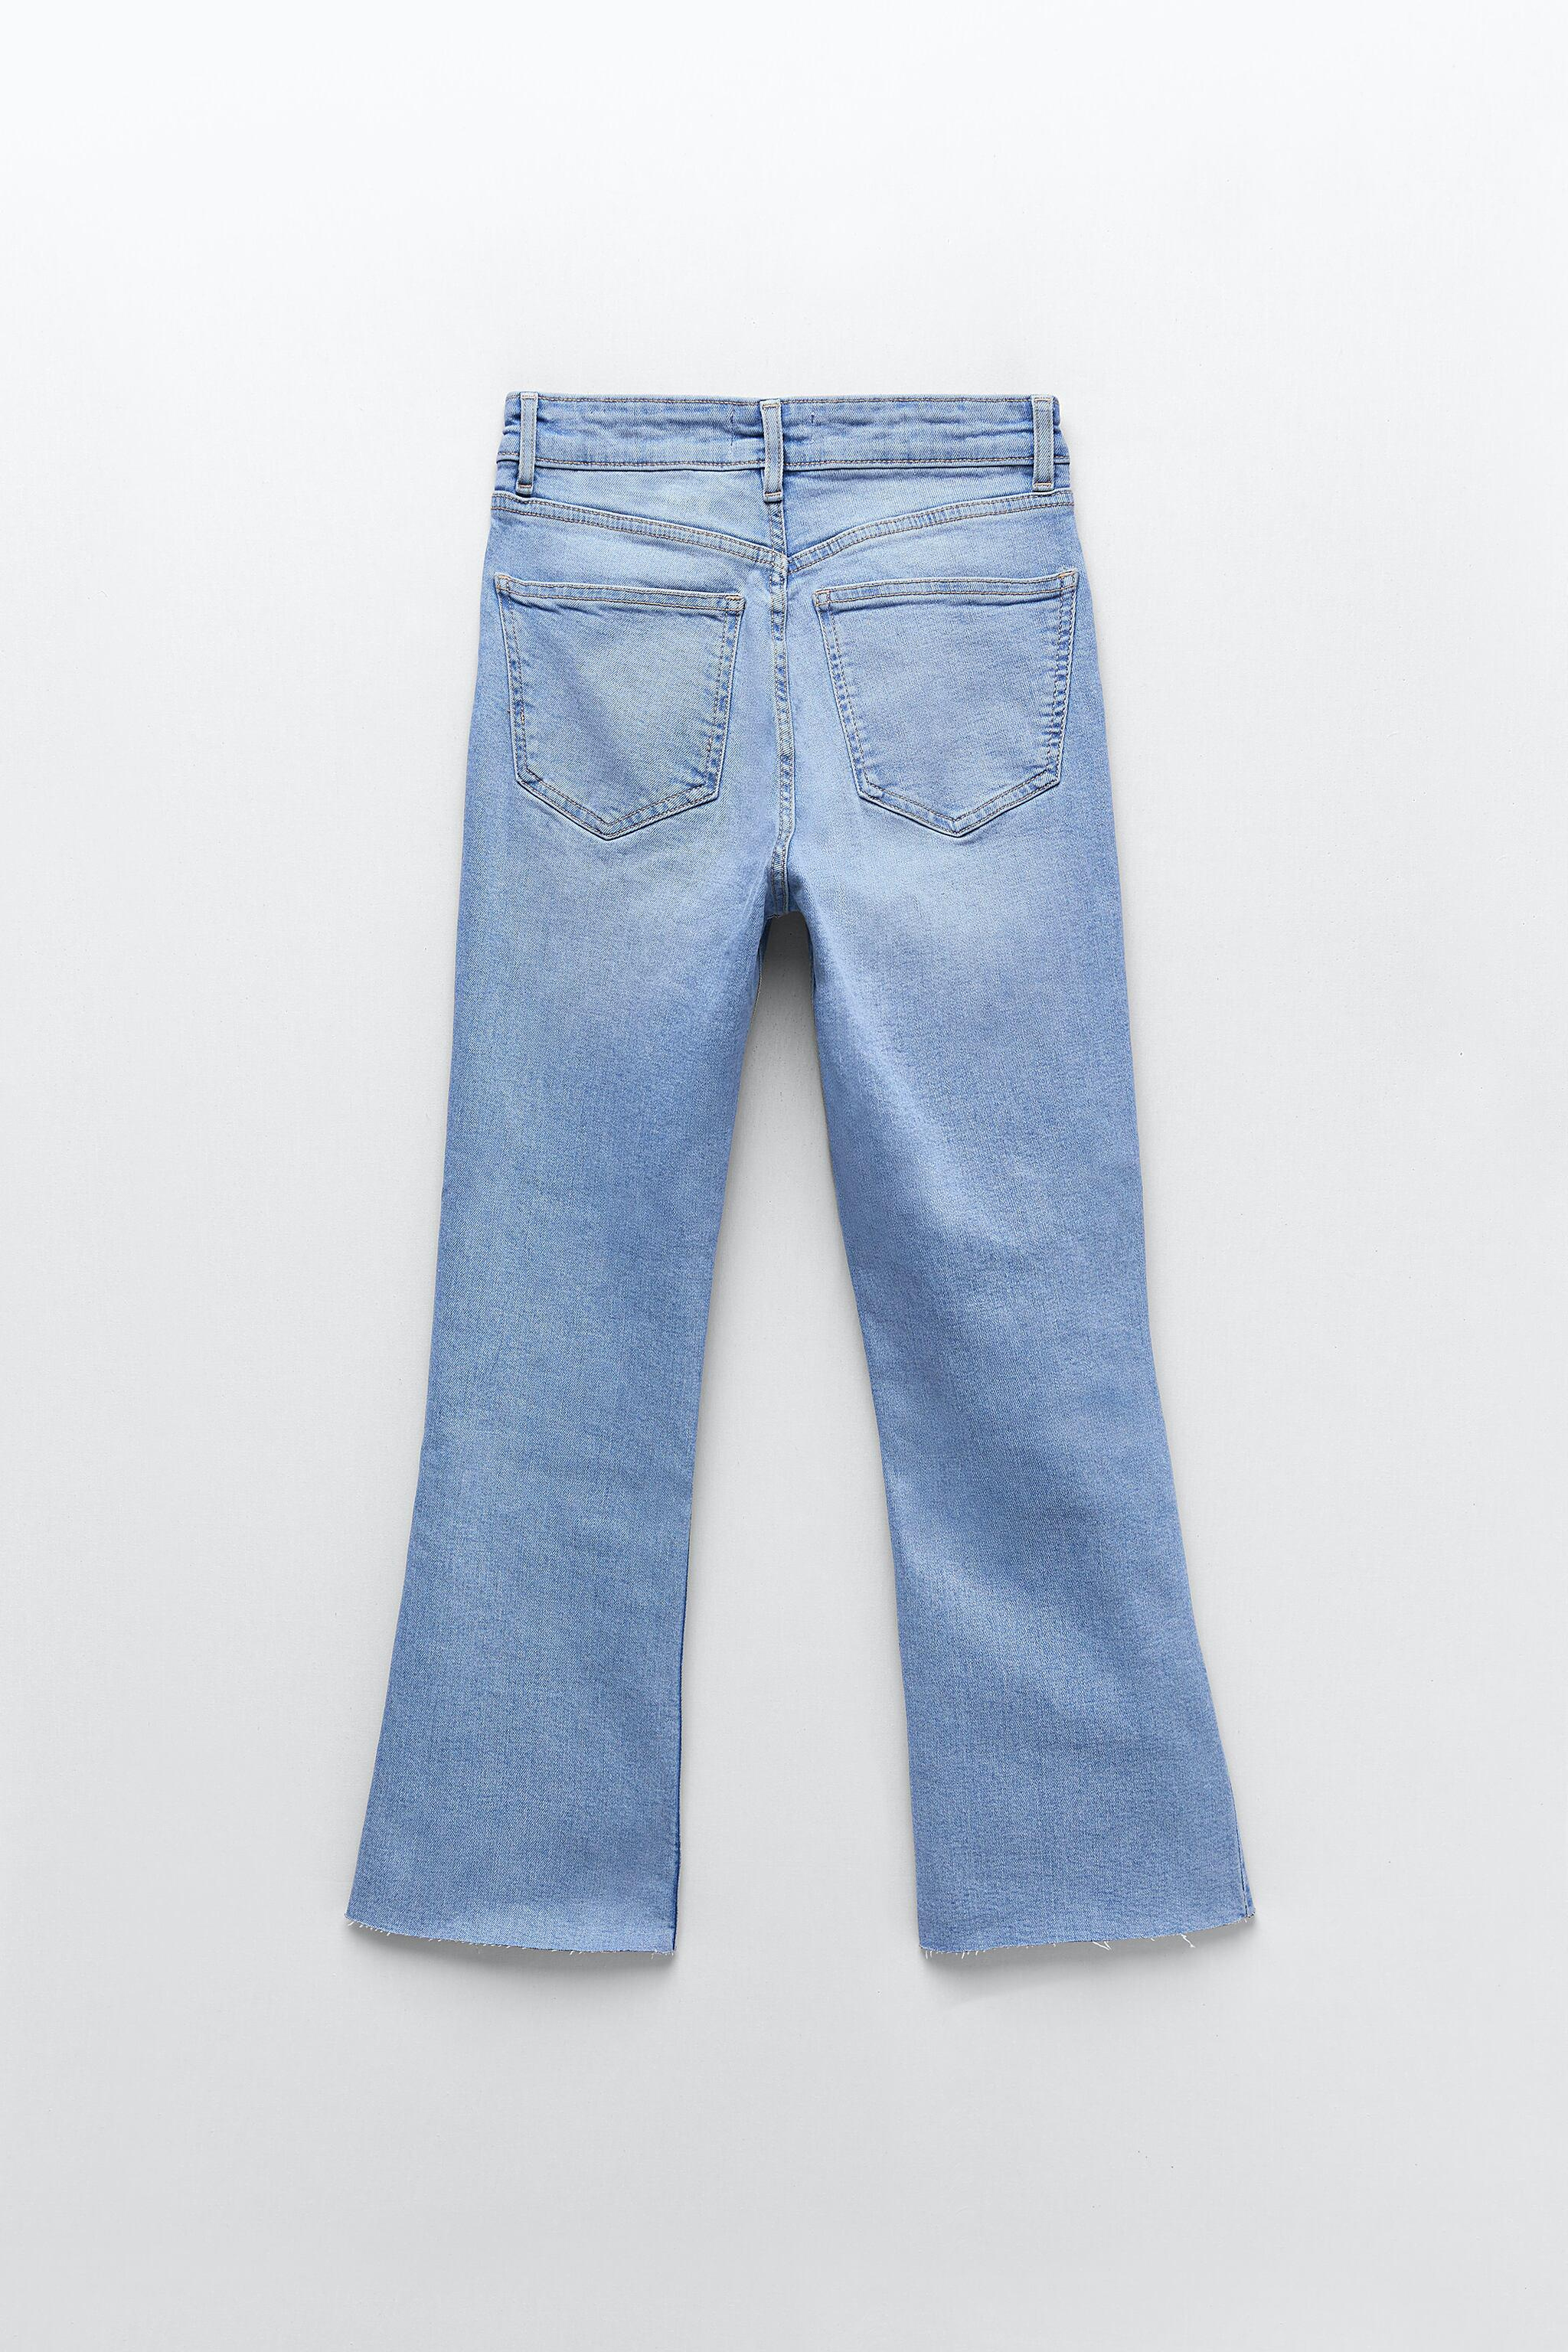 CROPPED FLARE JEANS 7